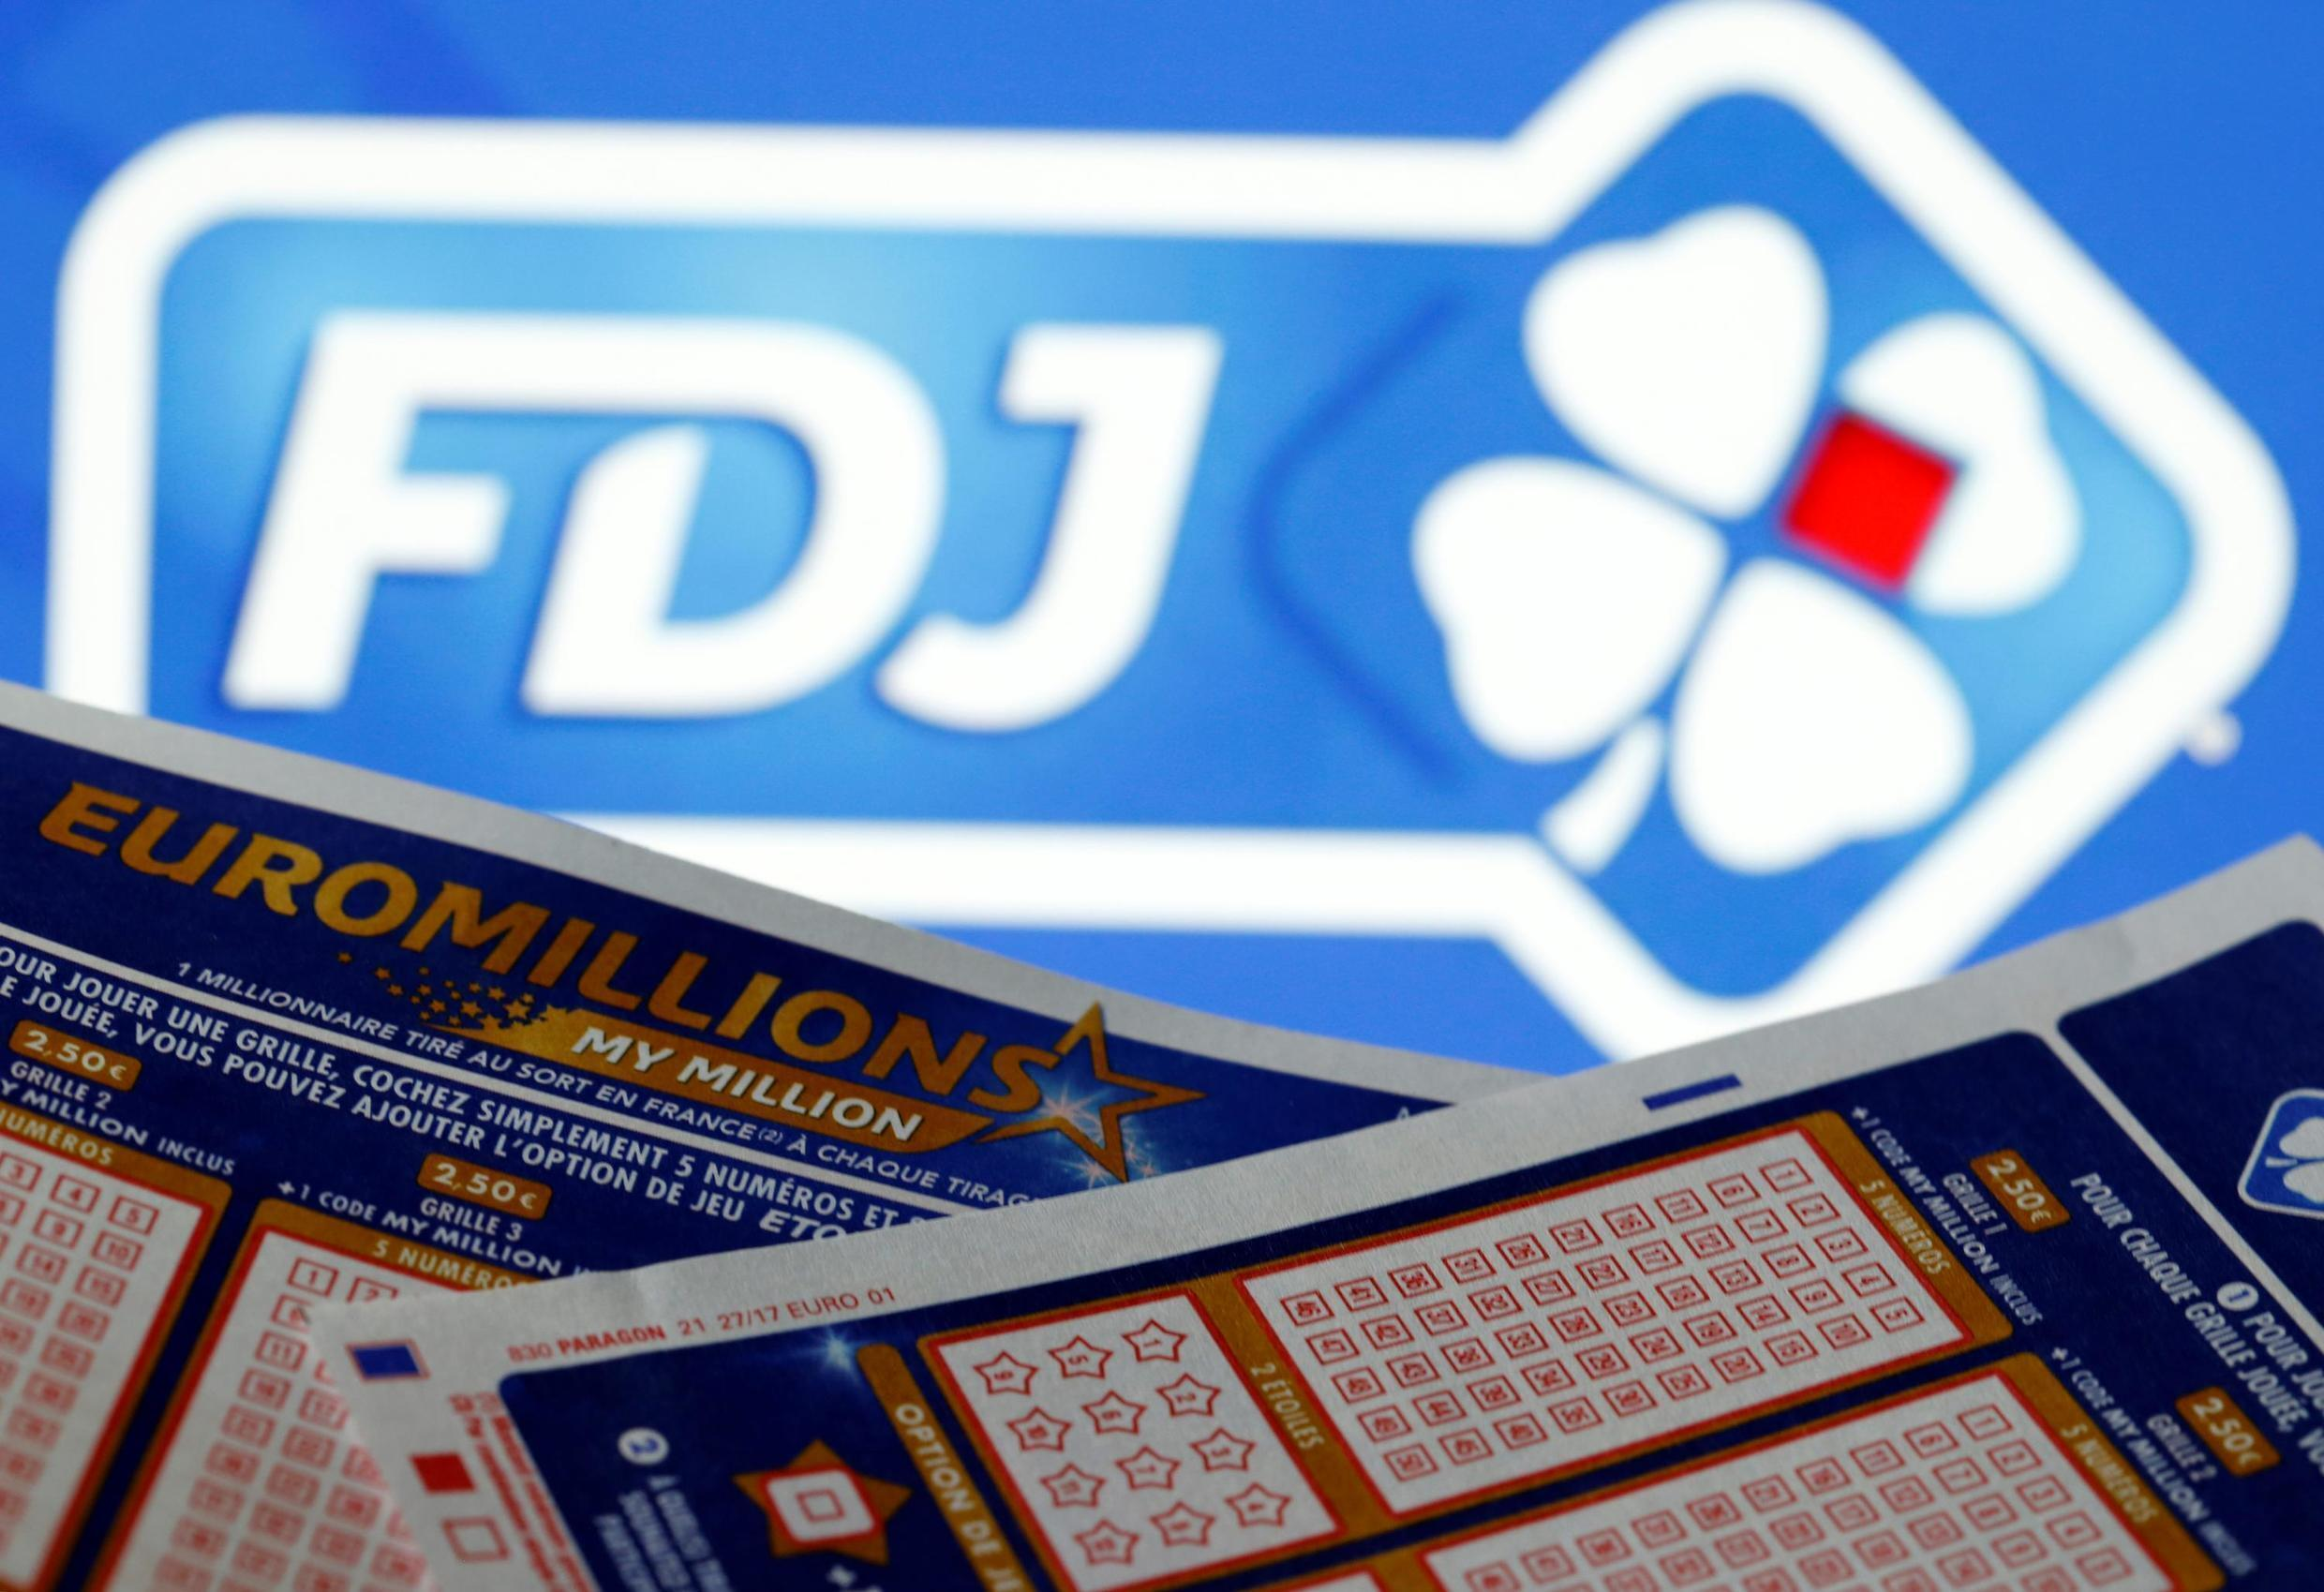 Every one a winner: the French government has already reaped two billion euros from the FDJ sale.